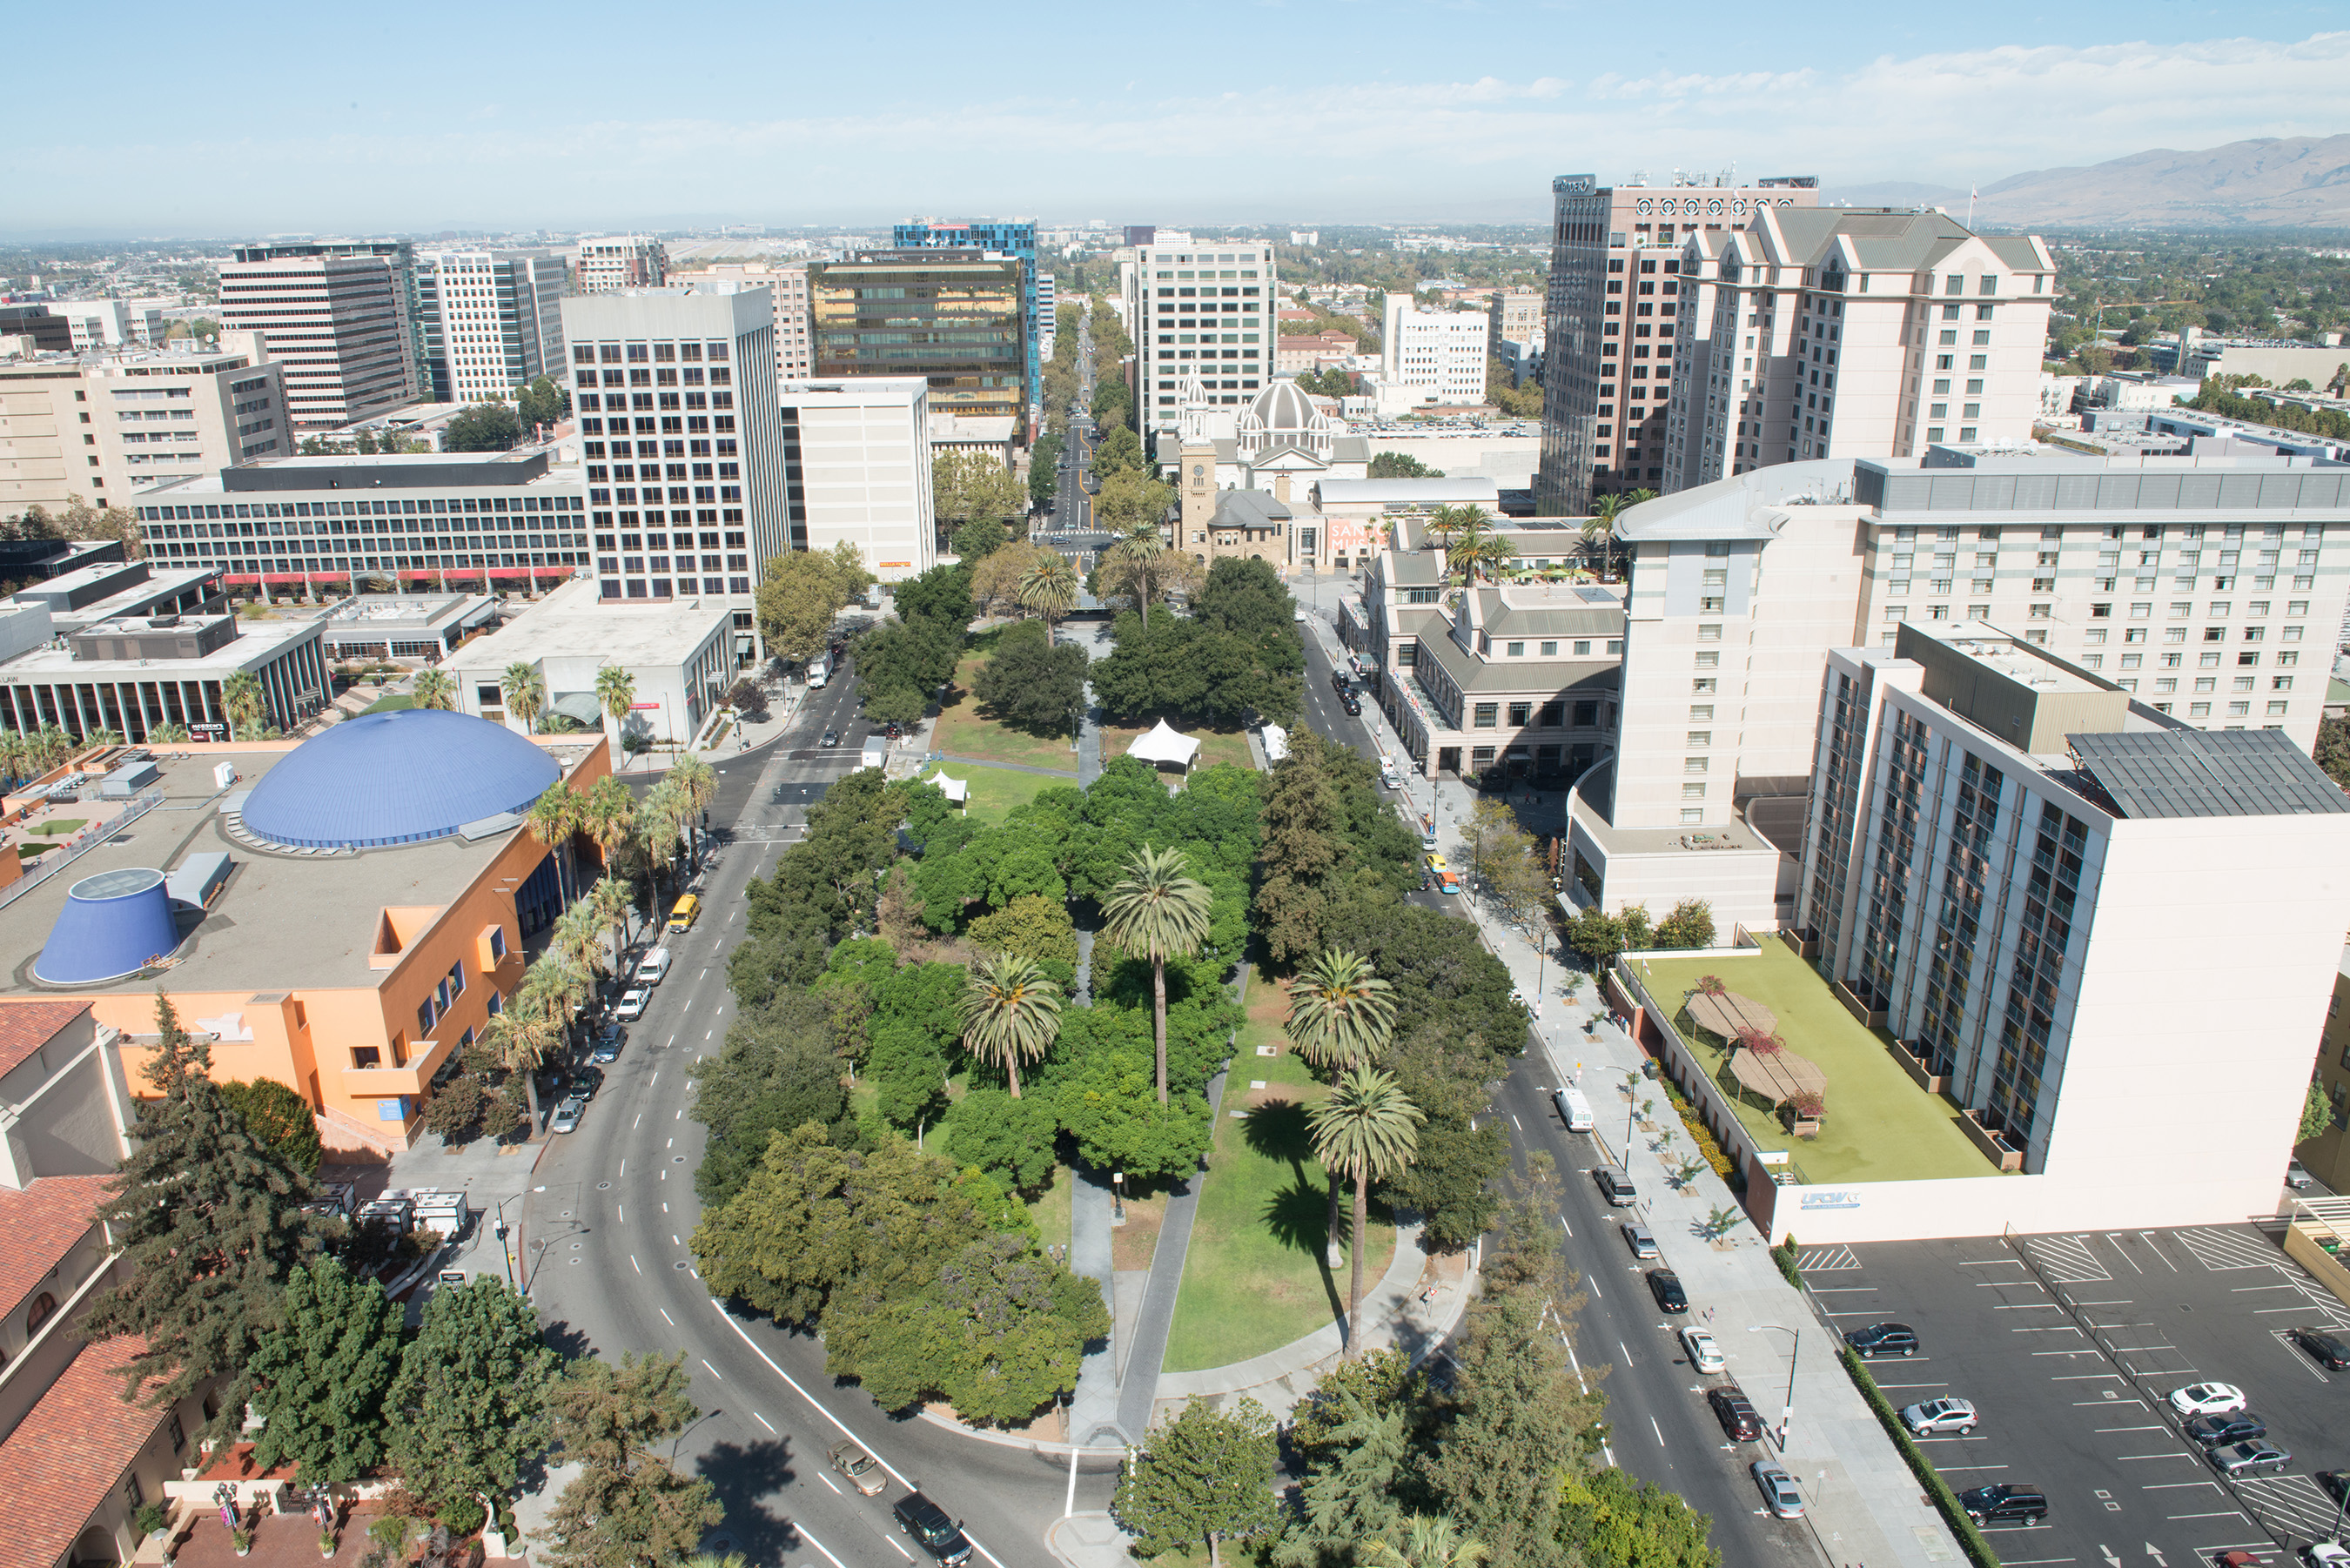 This historic park in the center of Downtown San Jose will feature an outdoor cafe and beer garden, Information Center, mini-football field, and informal games.